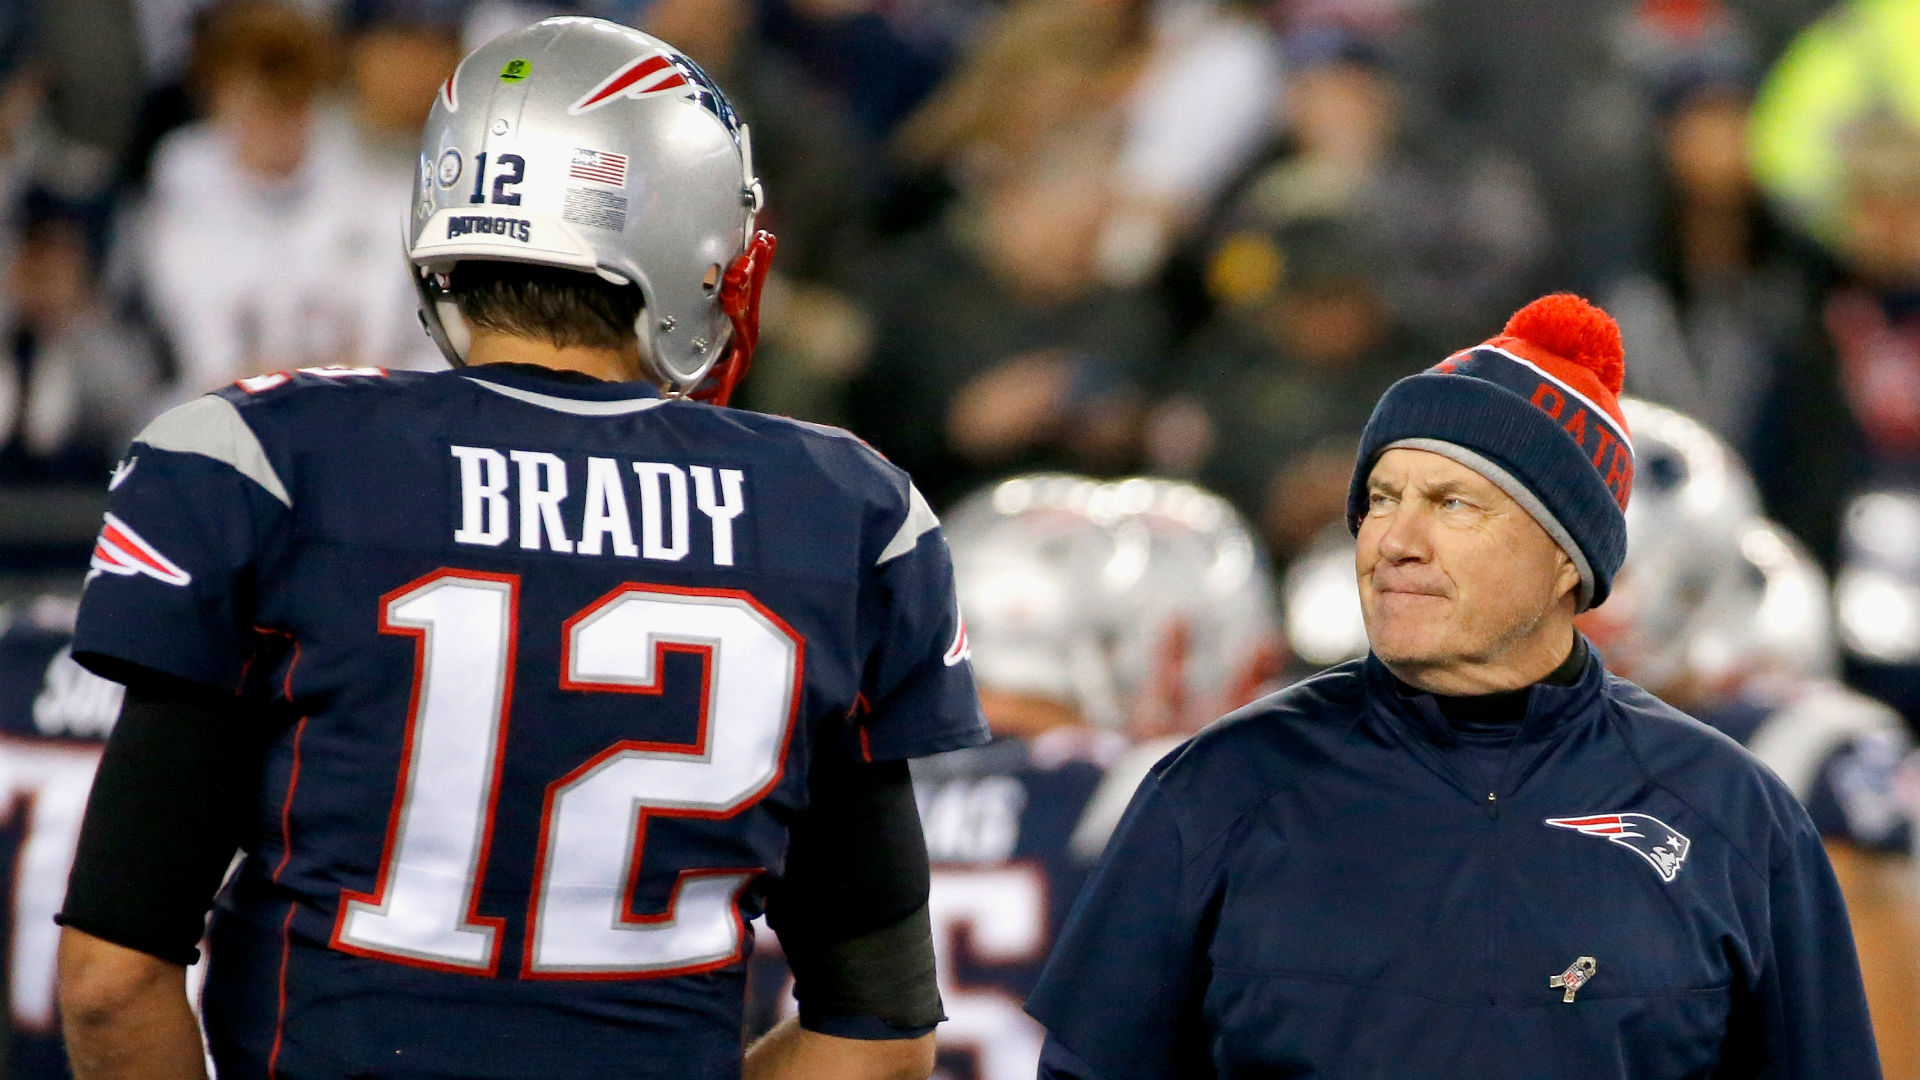 Patriots coach Bill Belichick downplays talk of Tom Brady concussion